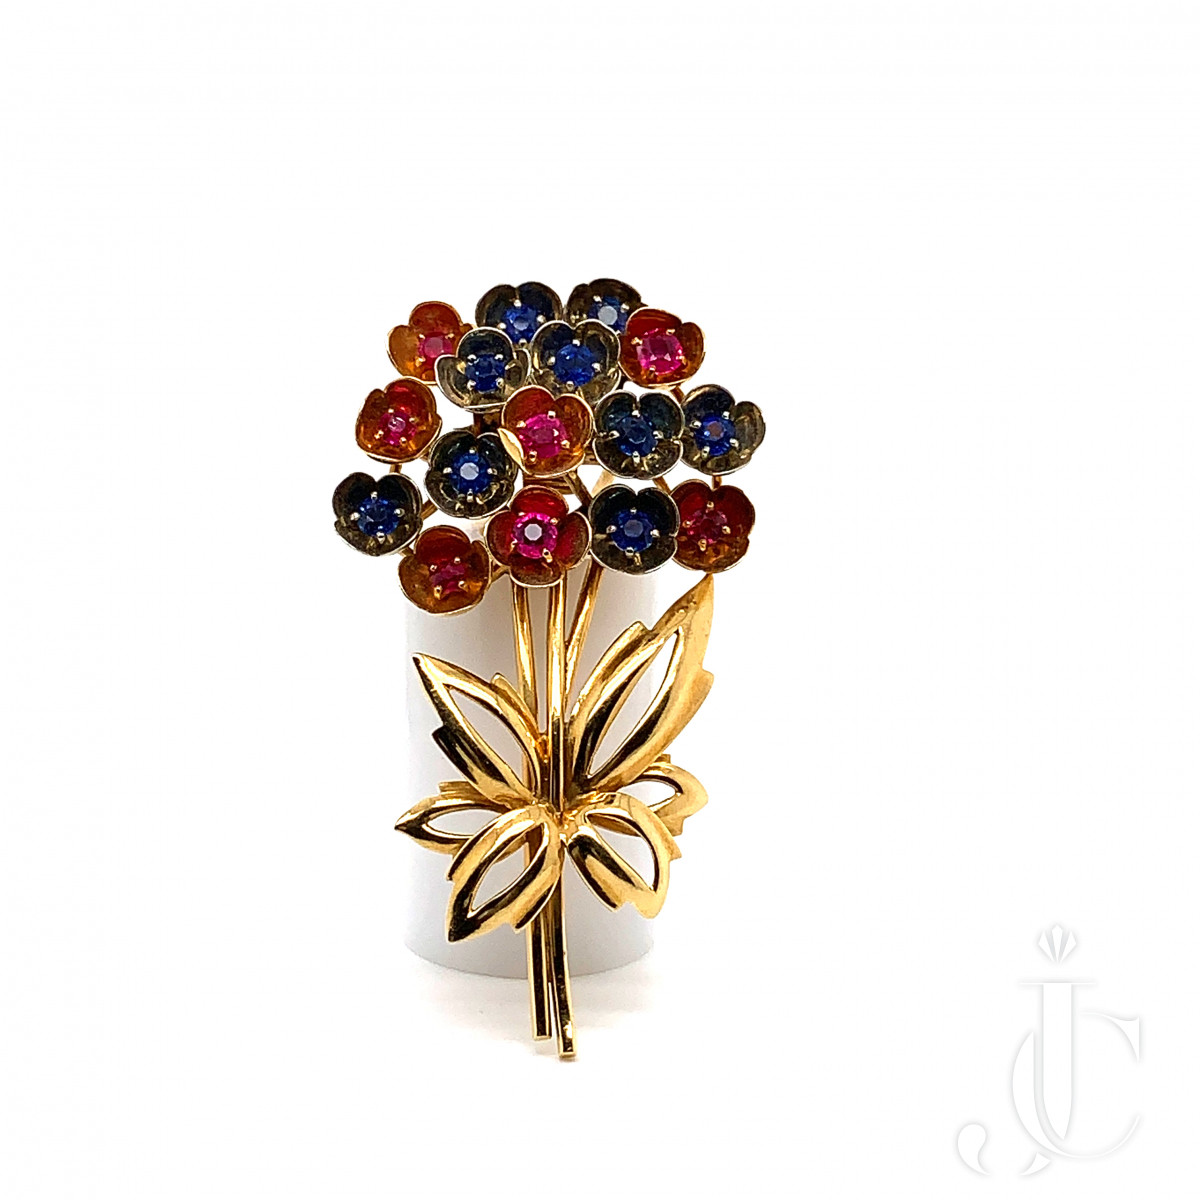 Gold, rubis and sapphire flowers brooch by Cartier